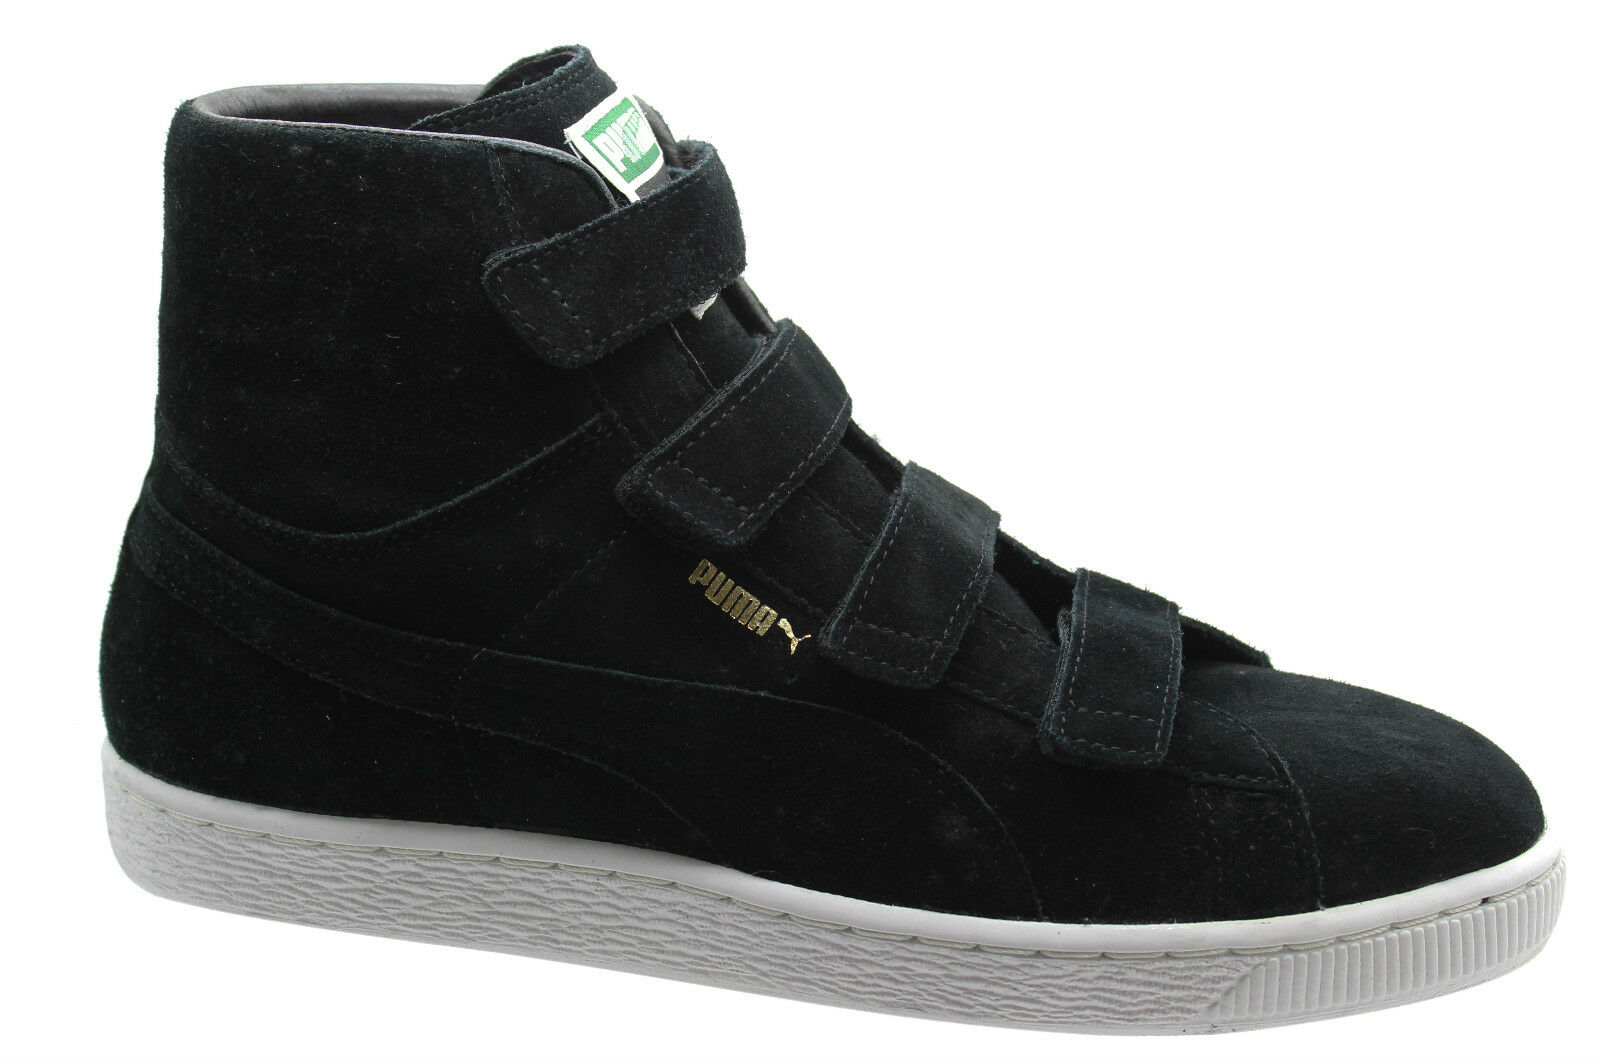 Puma Suede Mid V Mens Trainers 4 Vlecro Strap Black Leather 350948 05 D98